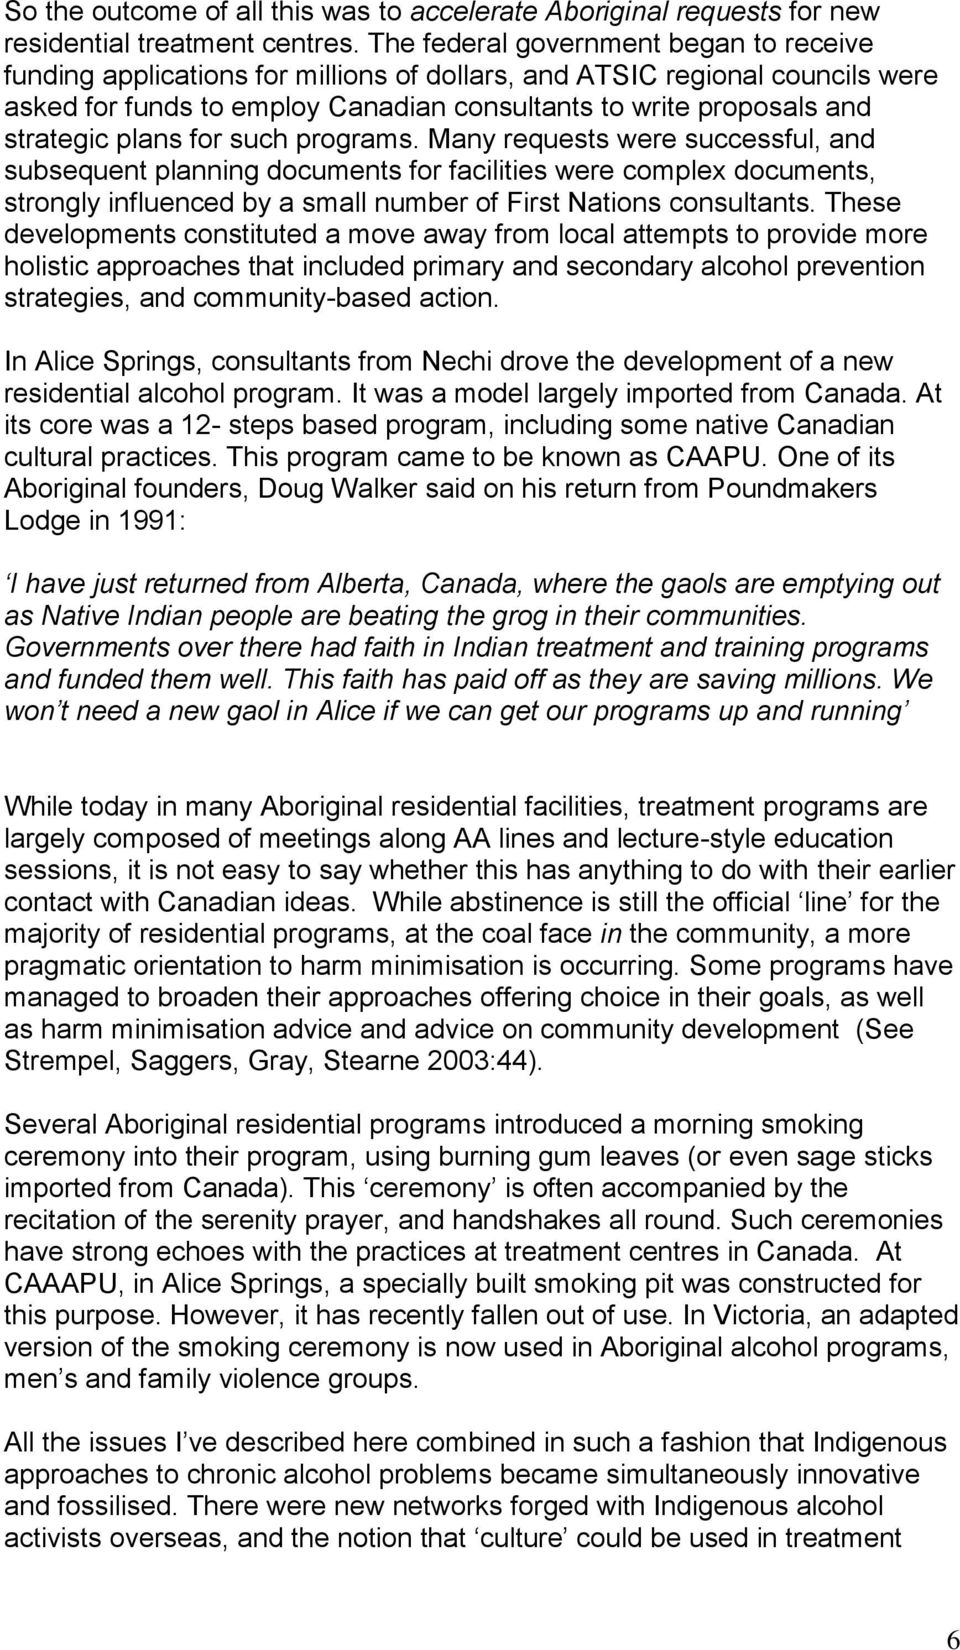 plans for such programs. Many requests were successful, and subsequent planning documents for facilities were complex documents, strongly influenced by a small number of First Nations consultants.